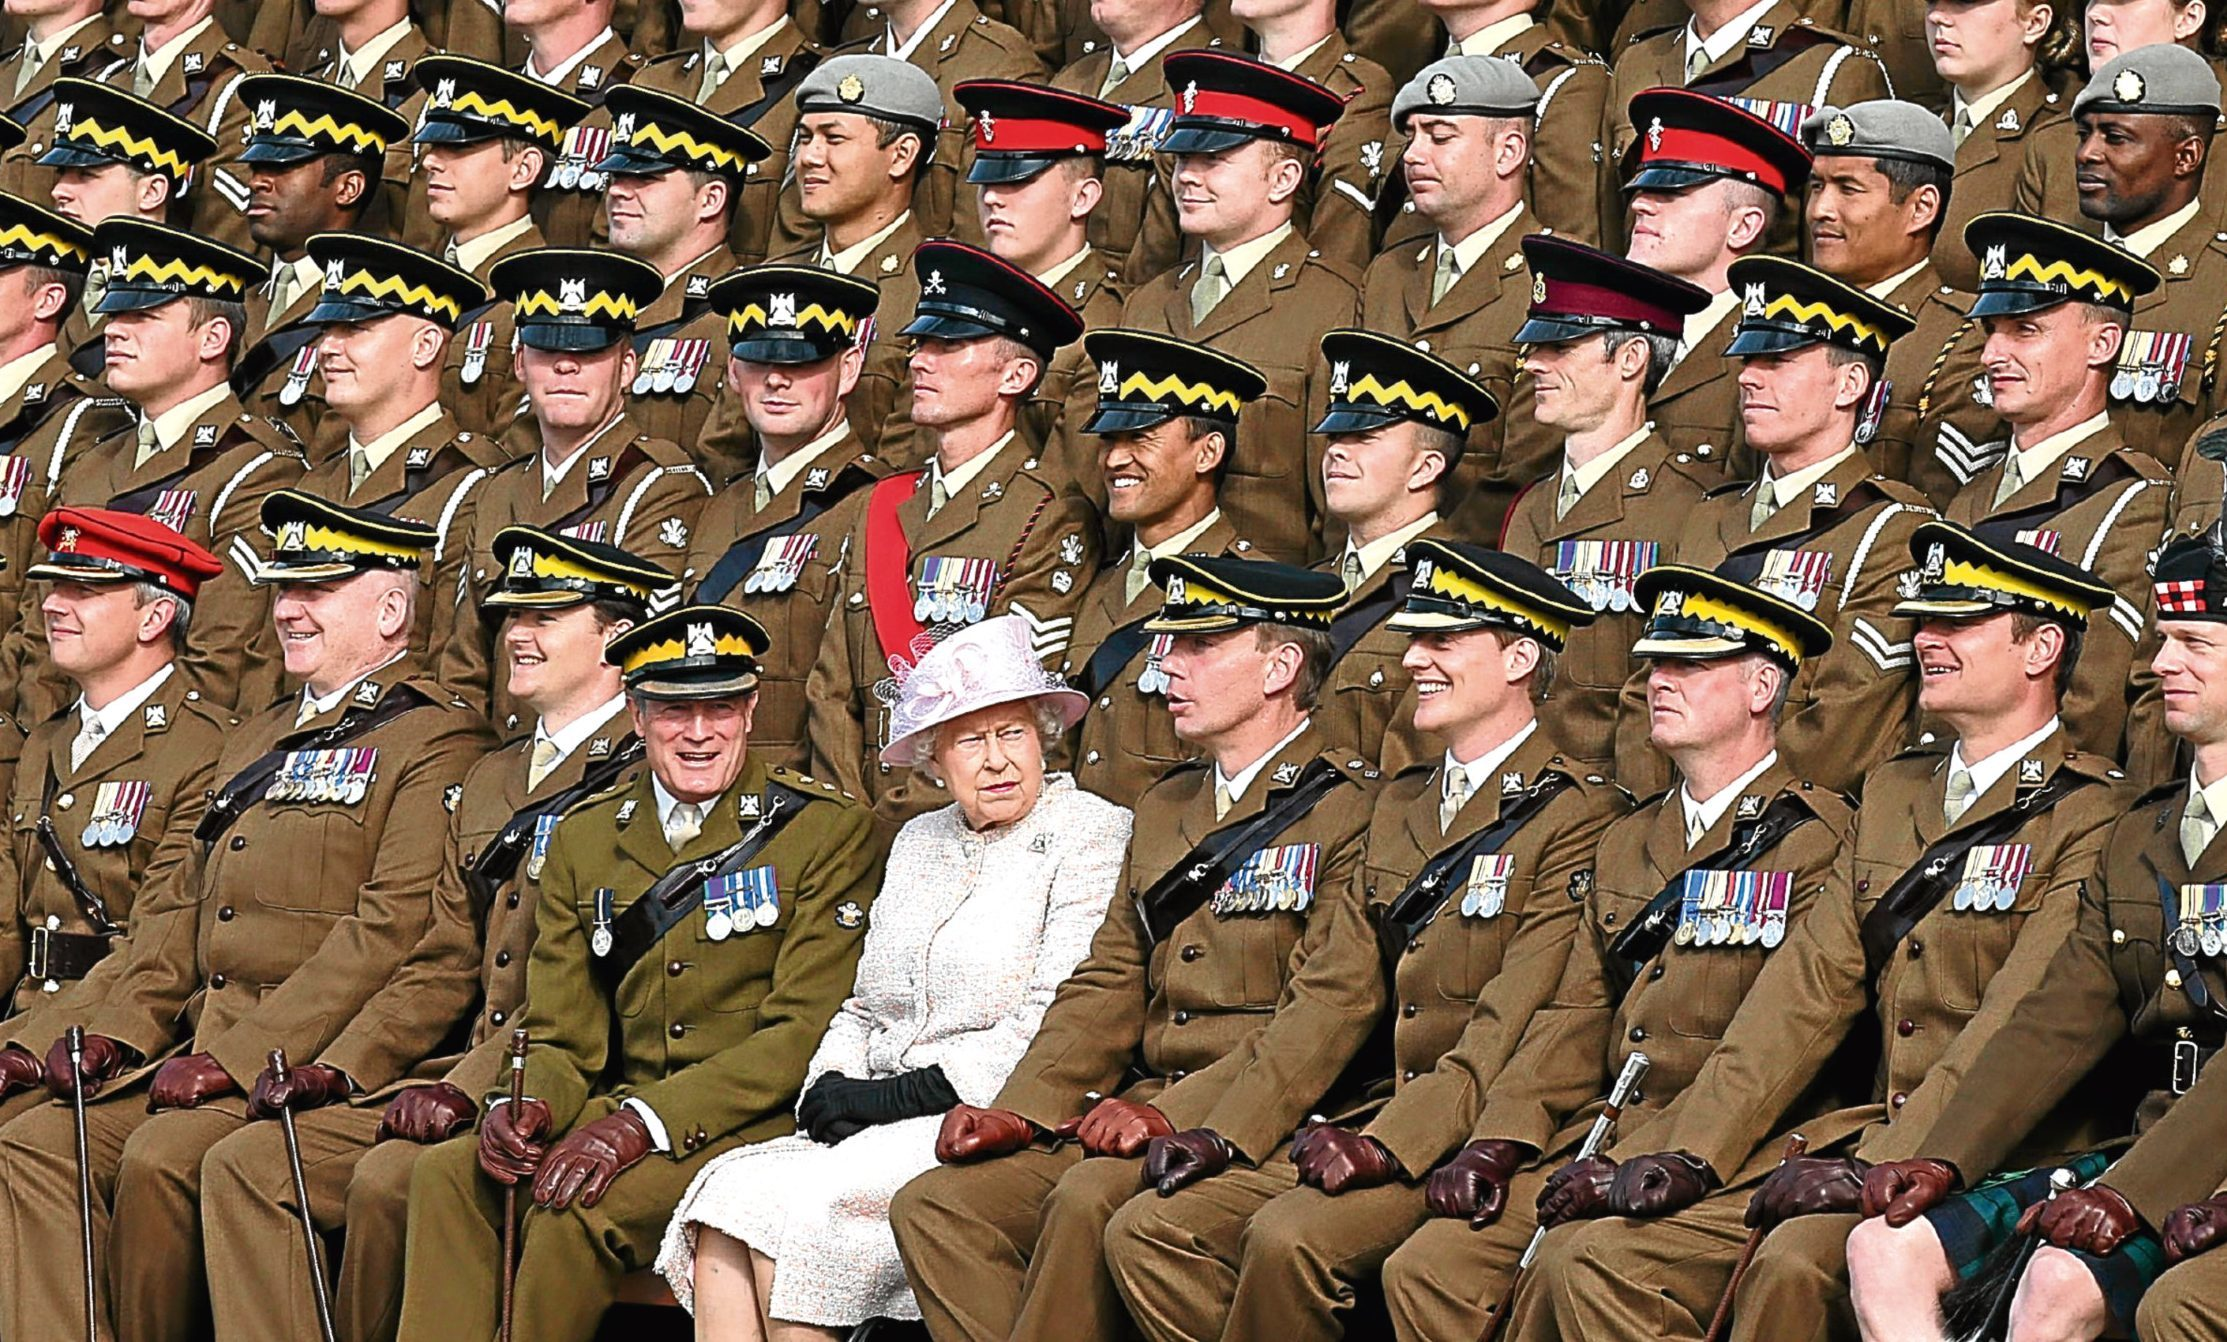 The Queen joins soldiers for a regimental photograph during a visit to the Royal Scots Dragoon Guards at the regiment's new barracks in Leuchars.